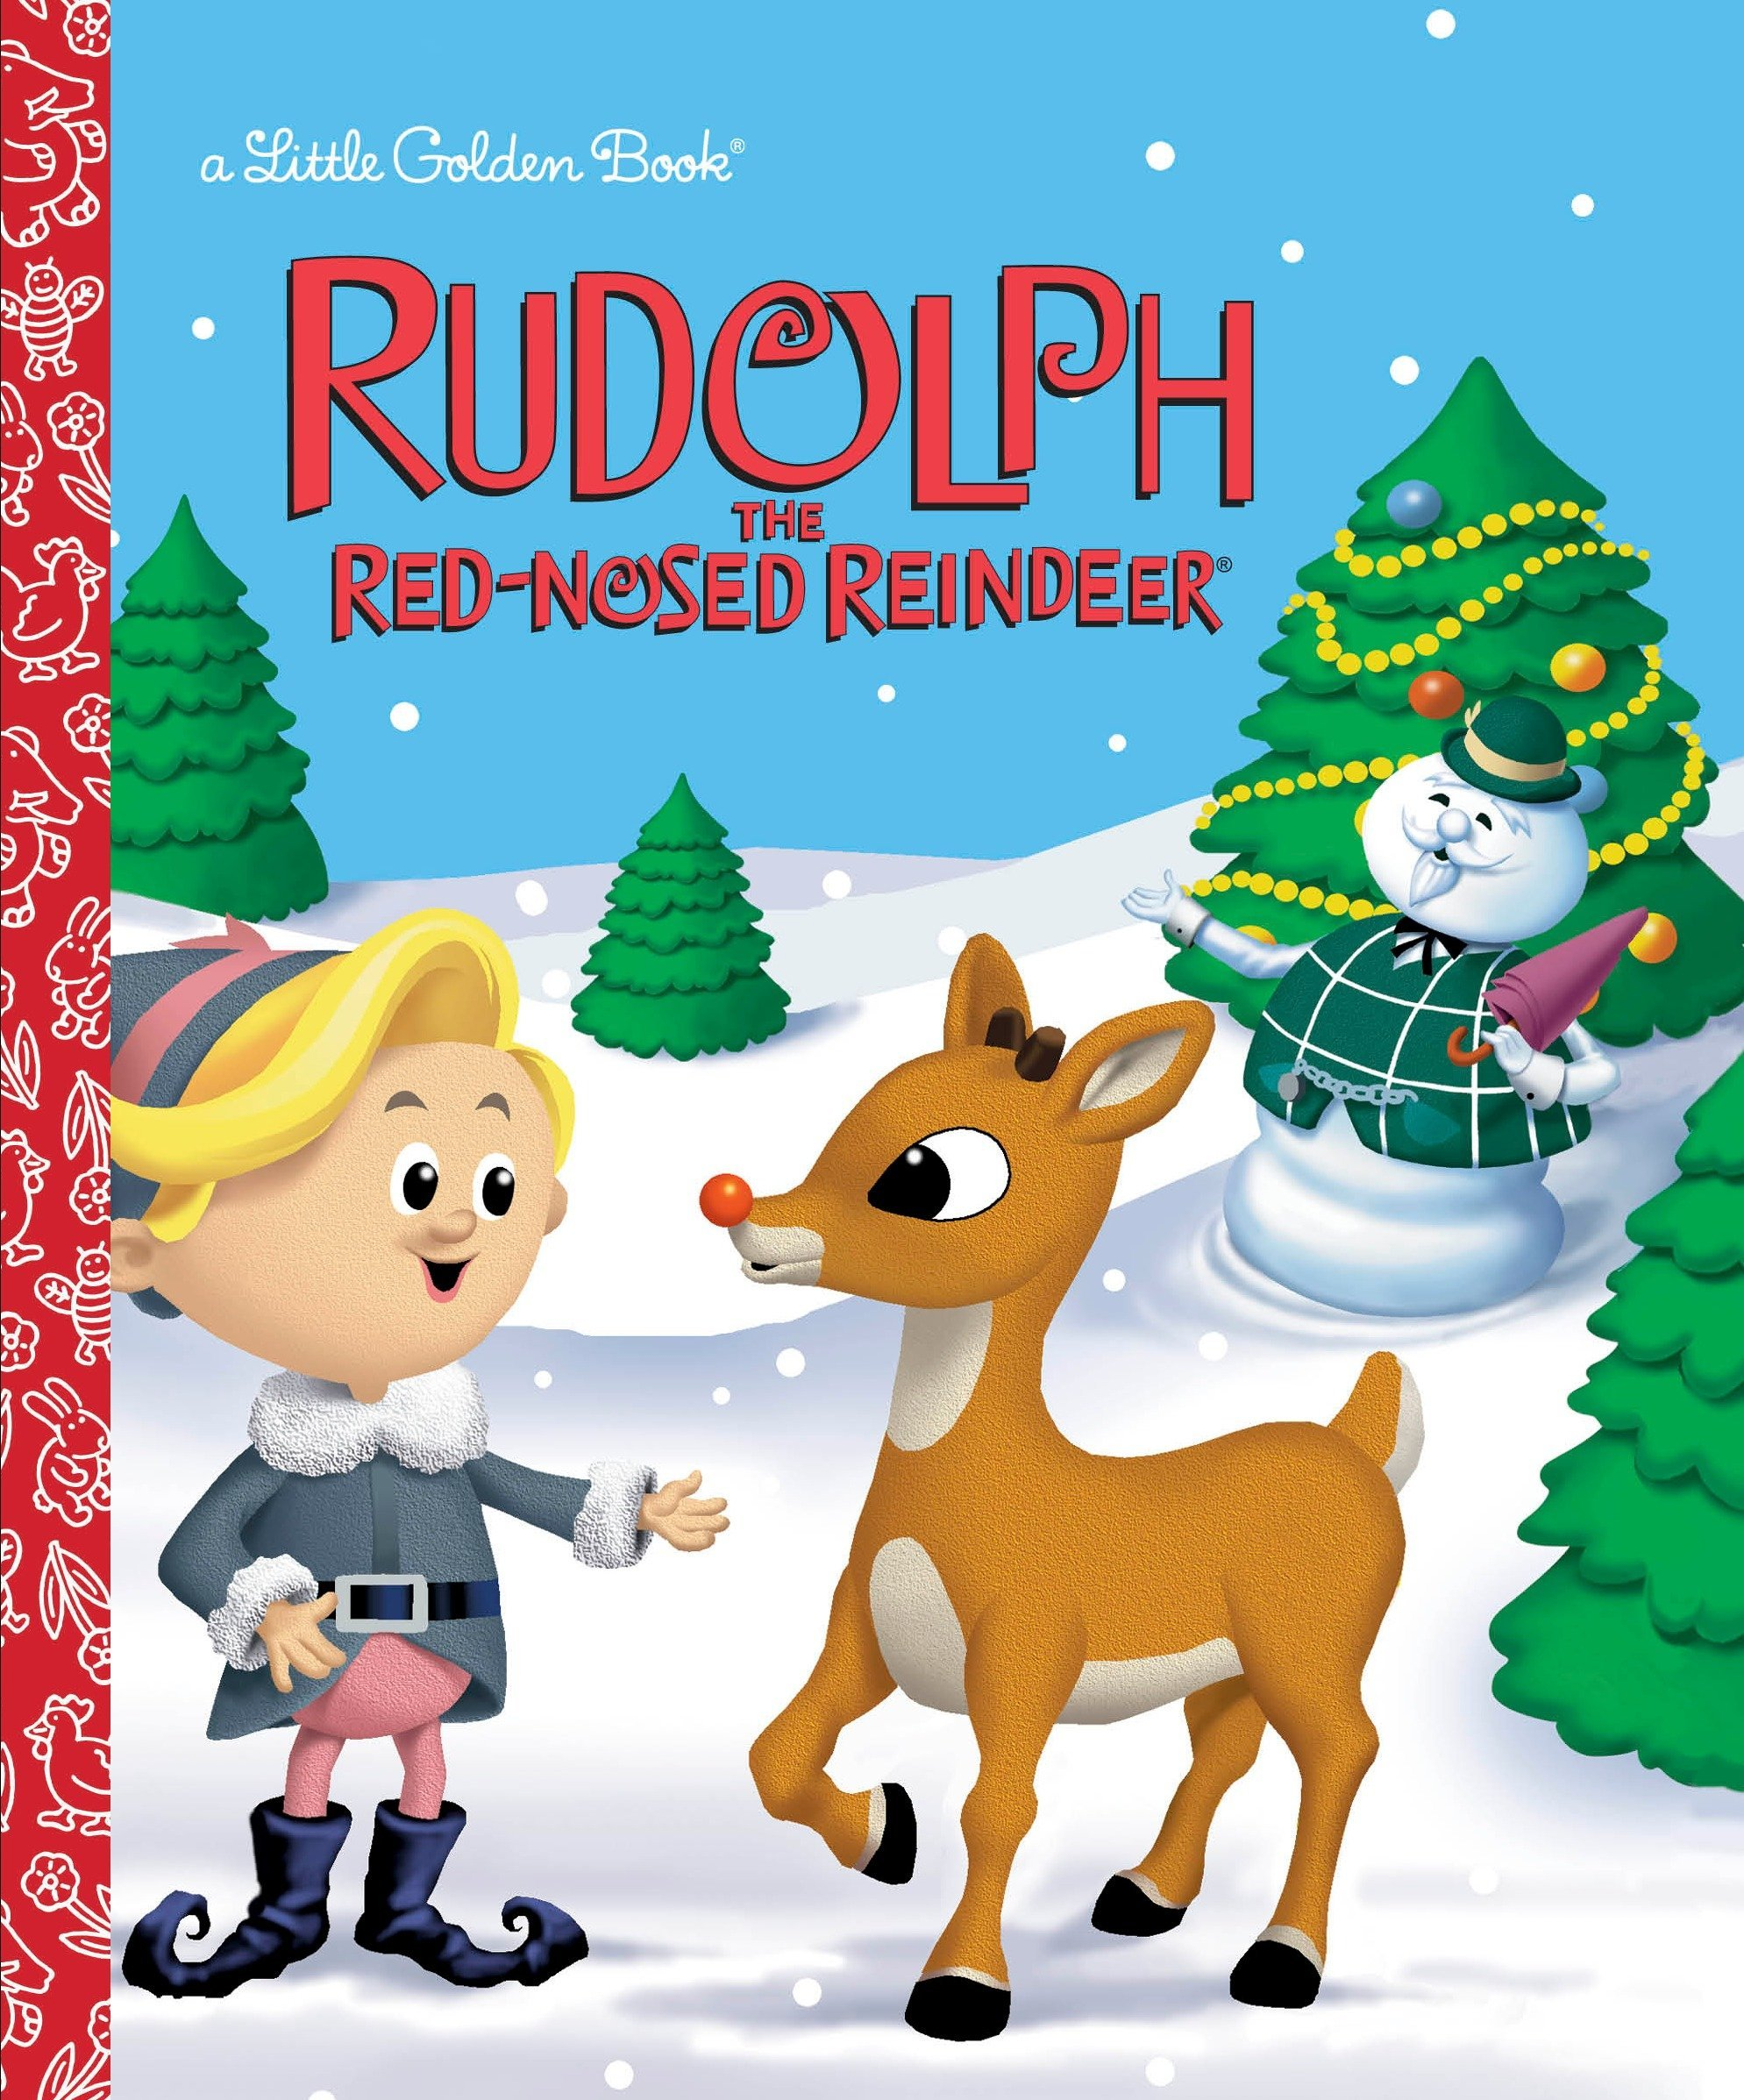 Rudolph the Red-Nosed Reindeer (Rudolph the Red-Nosed Reindeer ...